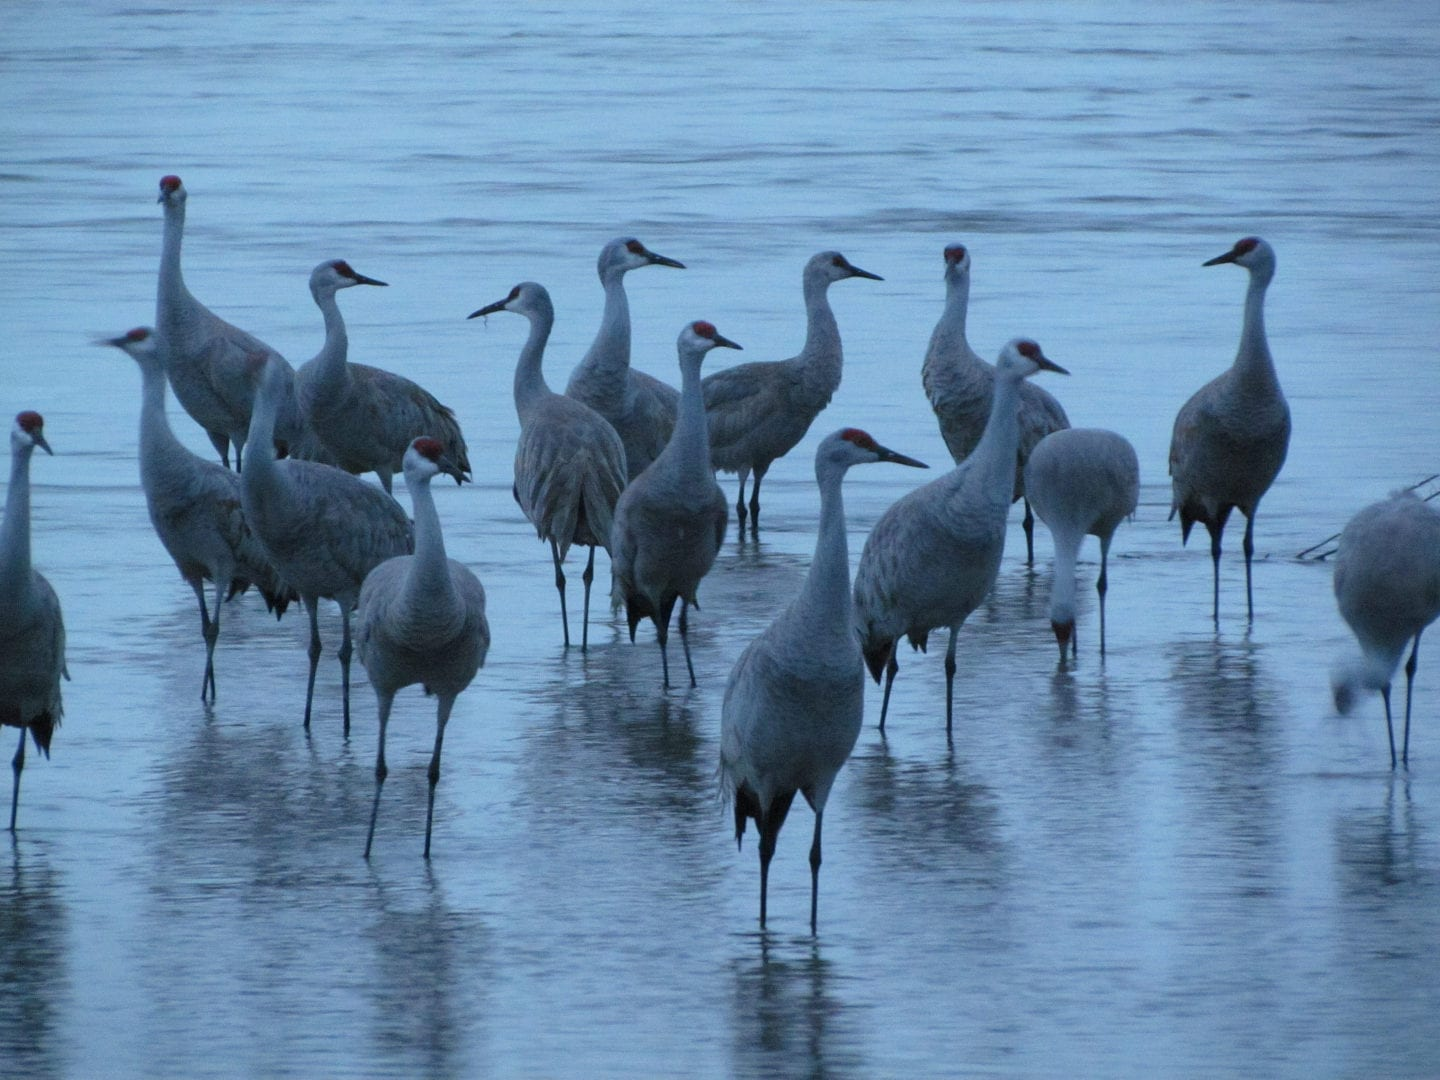 A flock of birds standing on water